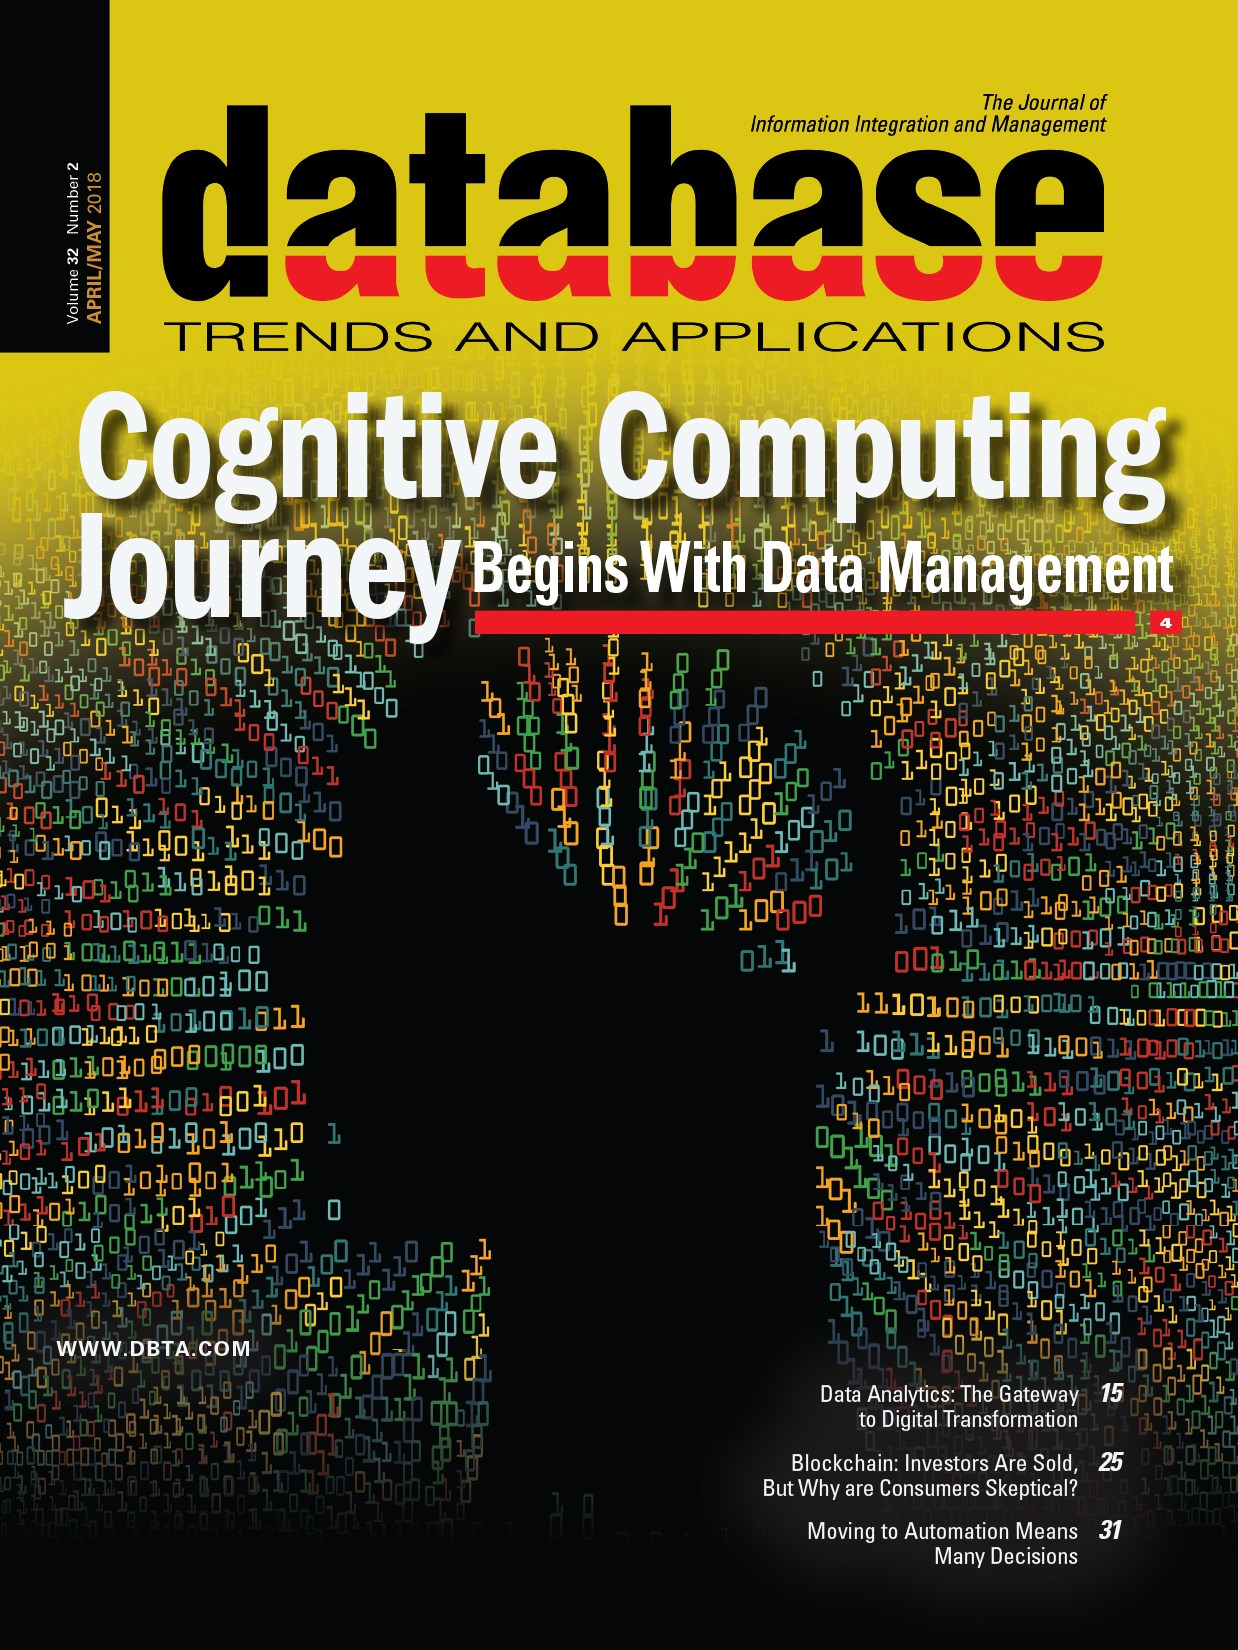 Database Trends and Applications Magazine: April/May 2018 Issue